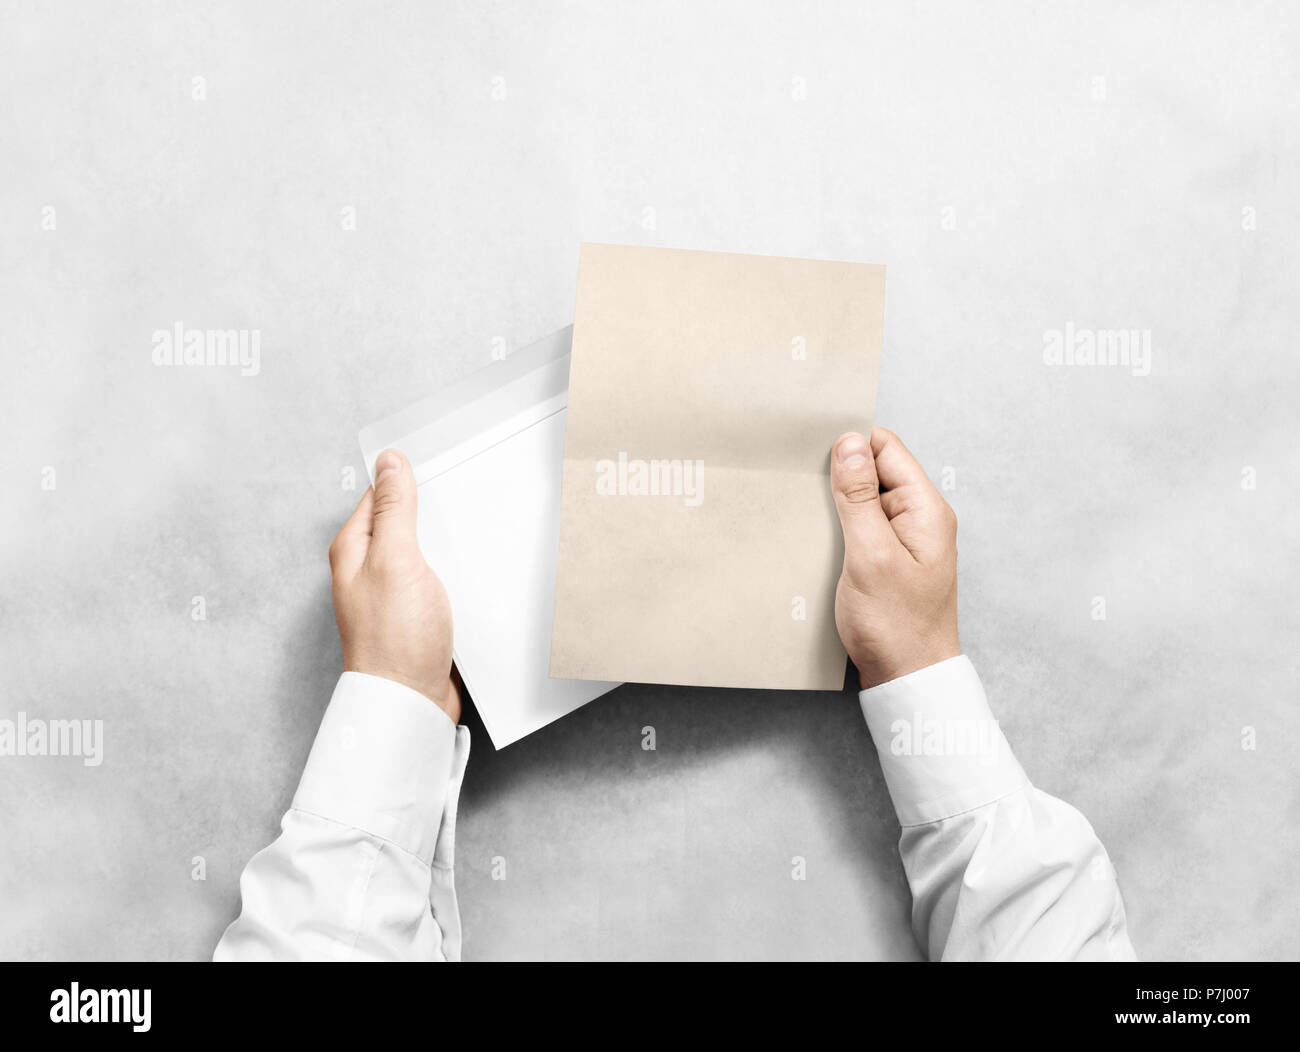 hand holding blank envelope and kraft letter mockup isolated arm